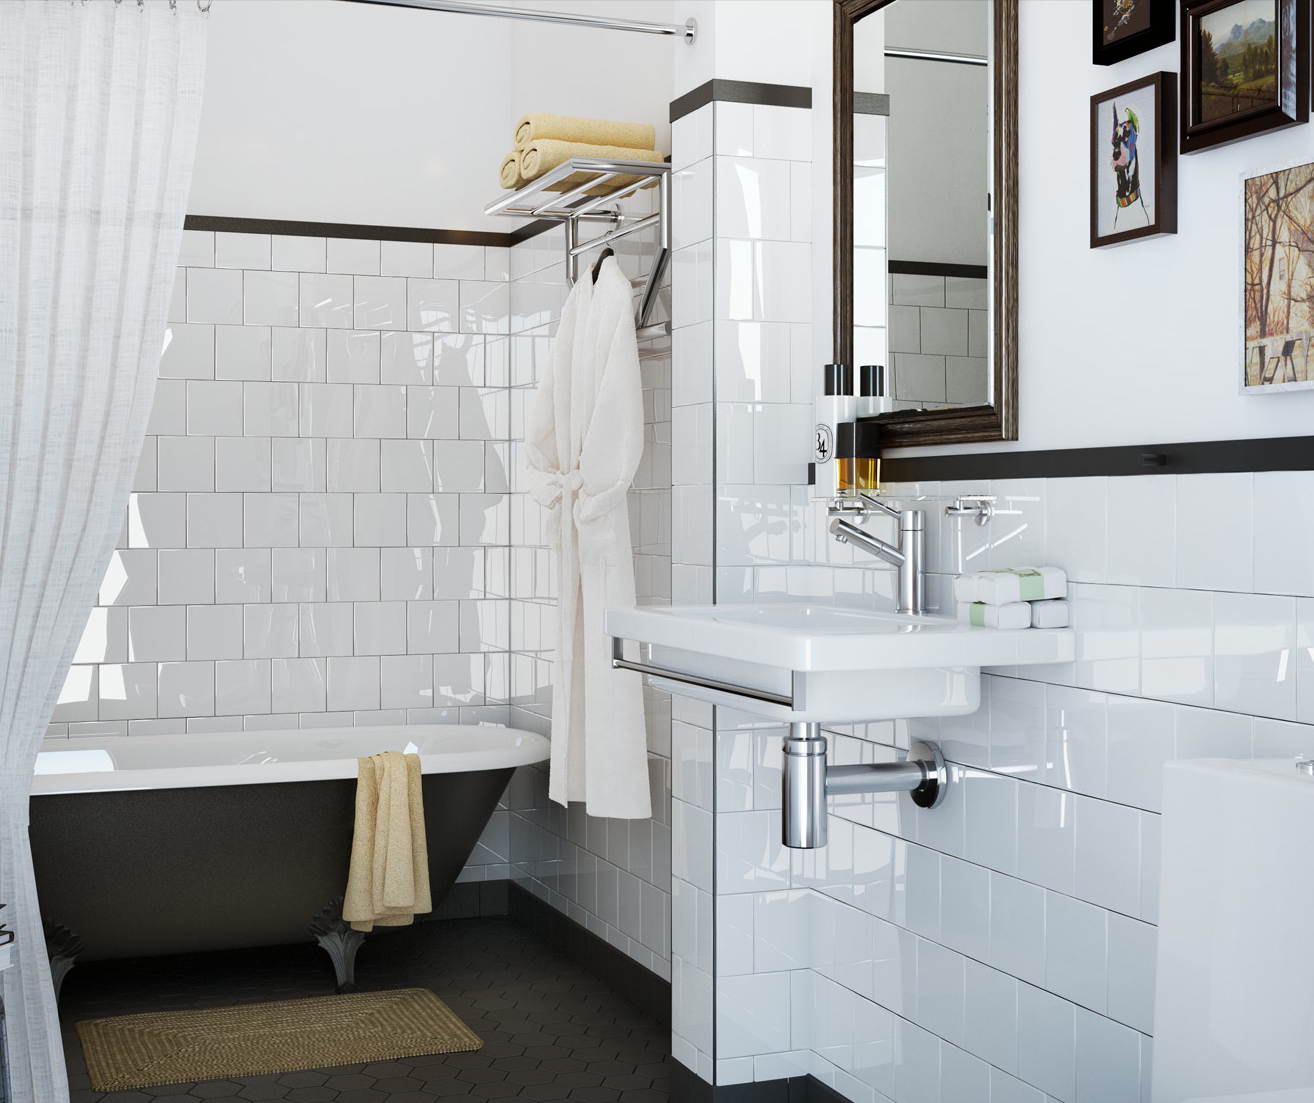 Gray Honeycomb Tile Floors With Subway Tile Walls Painted Walls So - Honeycomb tile bathroom